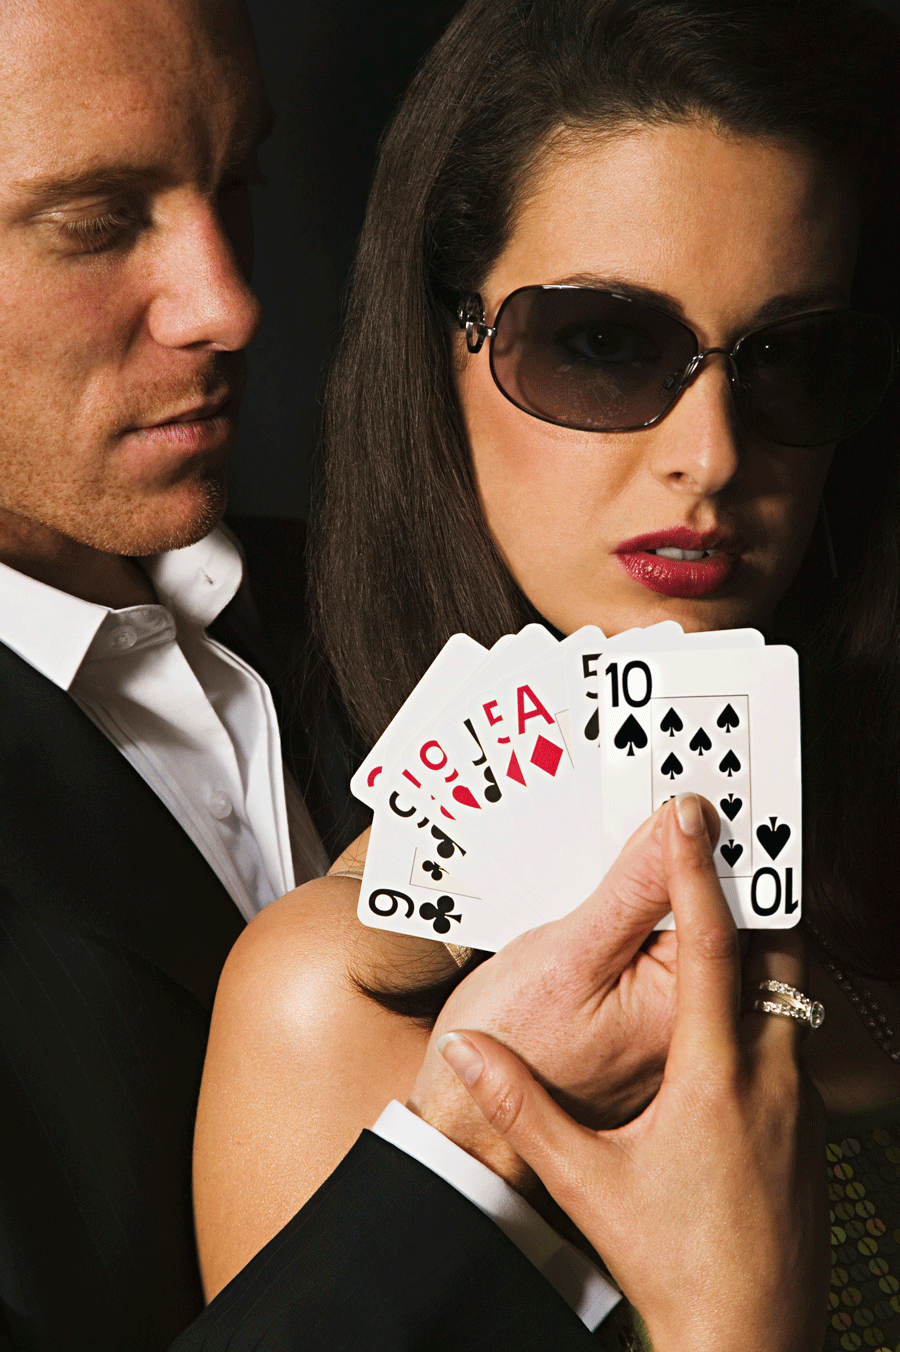 romance-casino-limo-parties-dance-drink-party